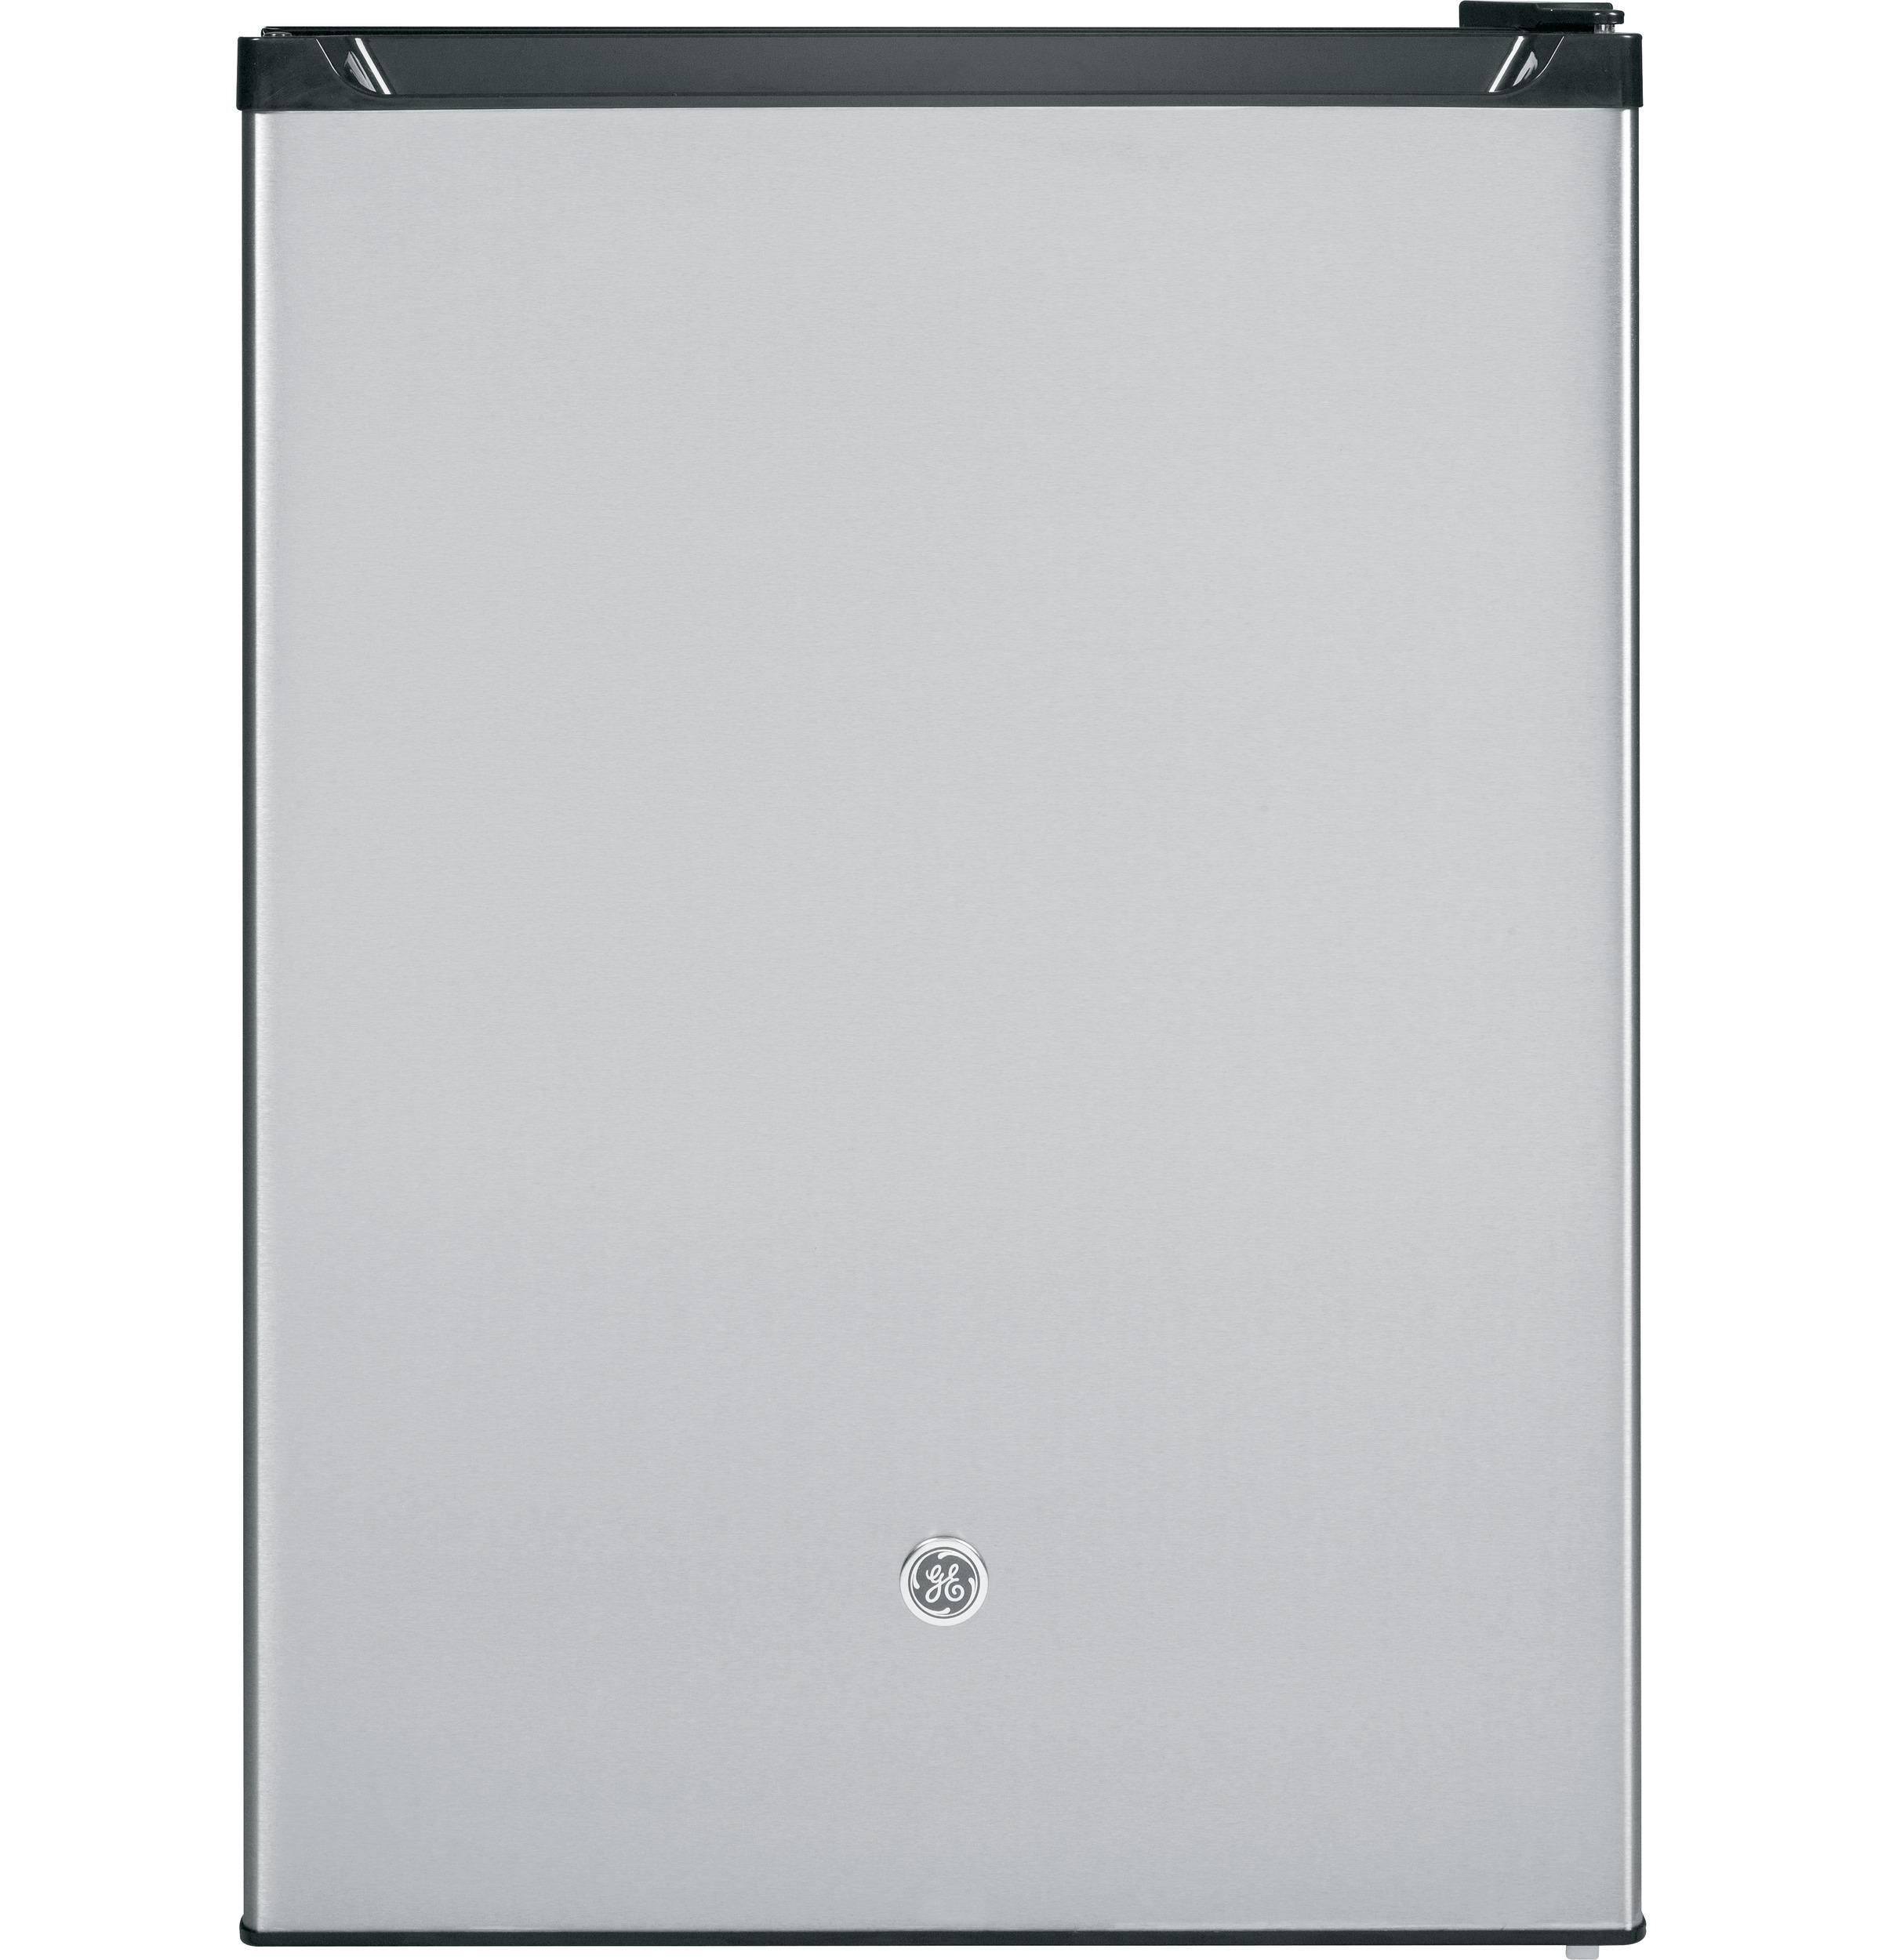 Compact Refrigerators - GE Spacemaker® Compact Refrigerator by GE Appliances at Westrich Furniture & Appliances